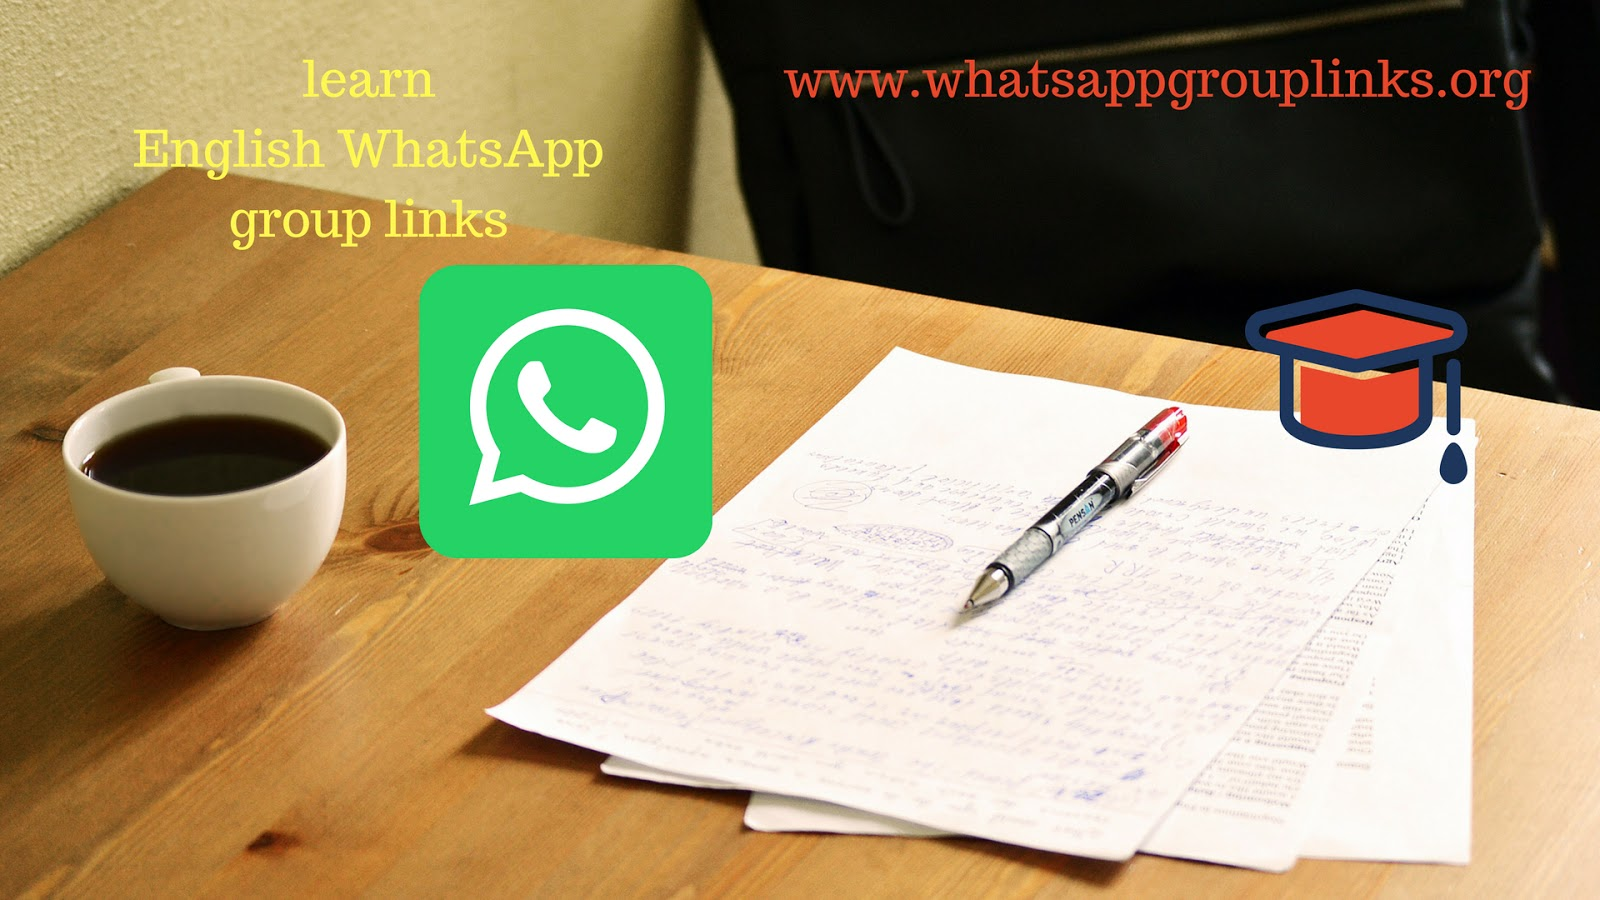 JOIN ENGLISH LEARNING WHATSAPP GROUP LINKS LIST - Whatsapp